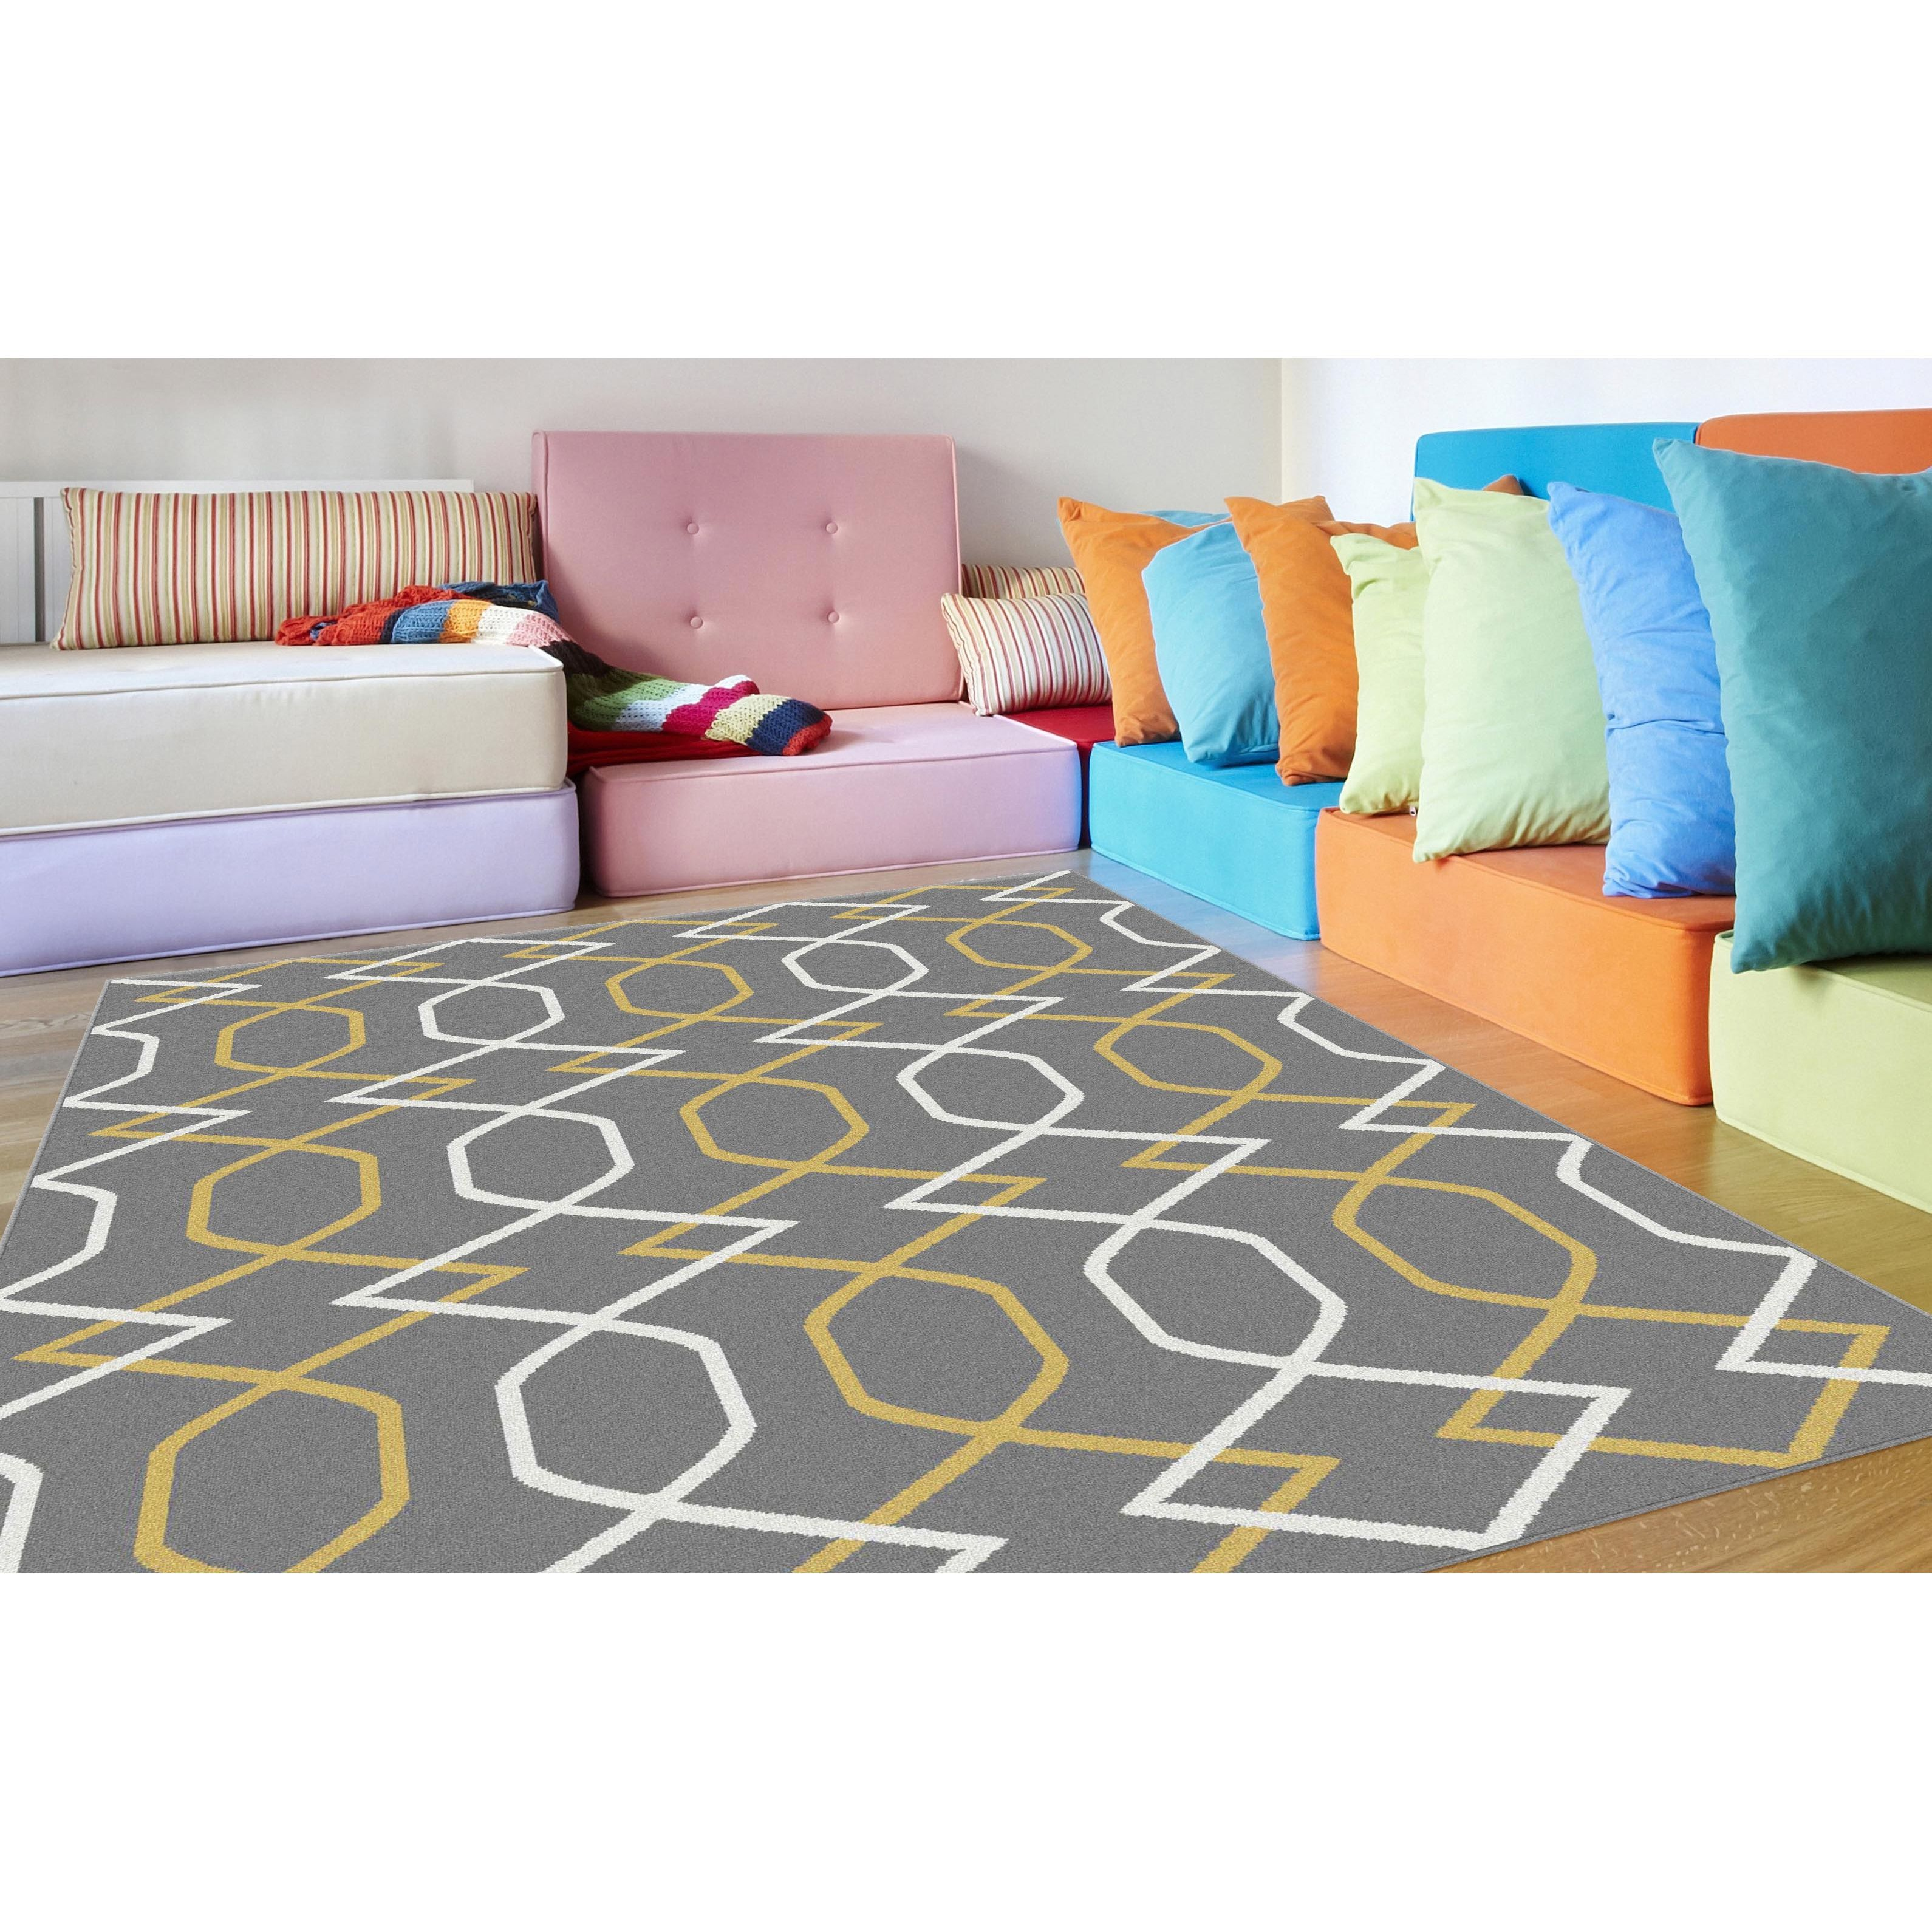 This contemporary home decor accent rug has a fresh geometric design that adds energy to a room. This rug has a plush feel, high density polypropylene fibers made with quality construction to ensure long indoor wear.